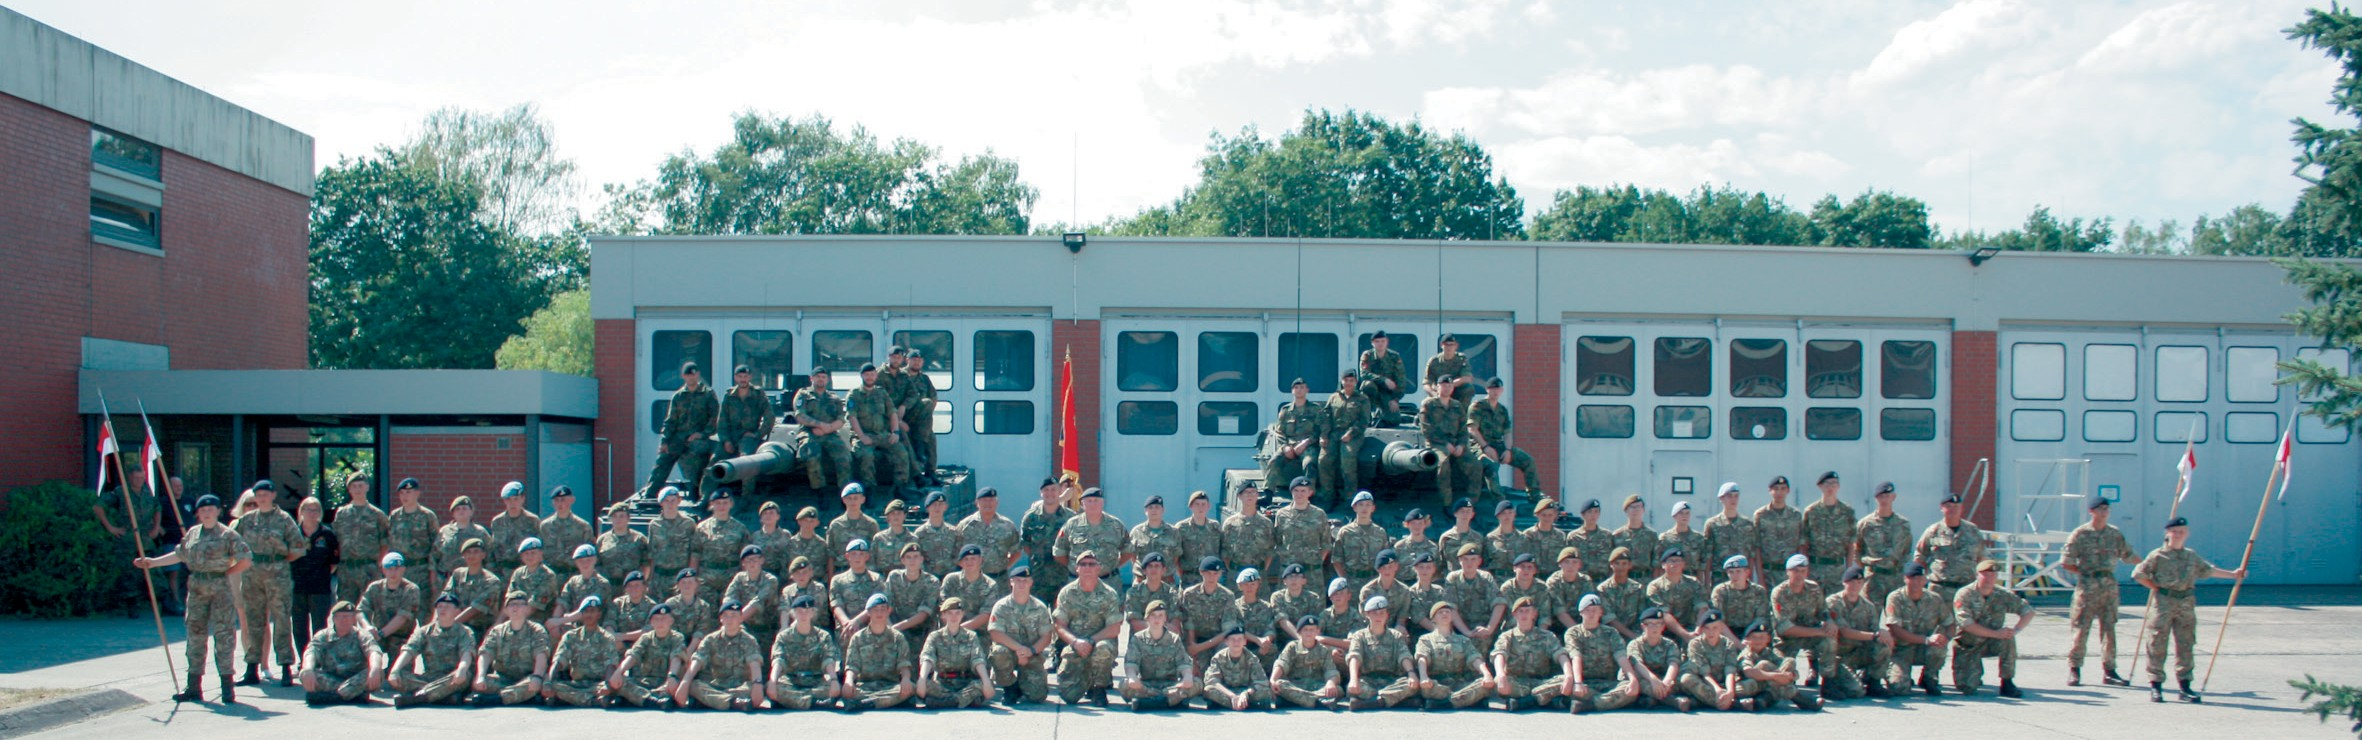 "Angehörige der ""Suffolk Army Cadet Force"" meets Hacketäuer"